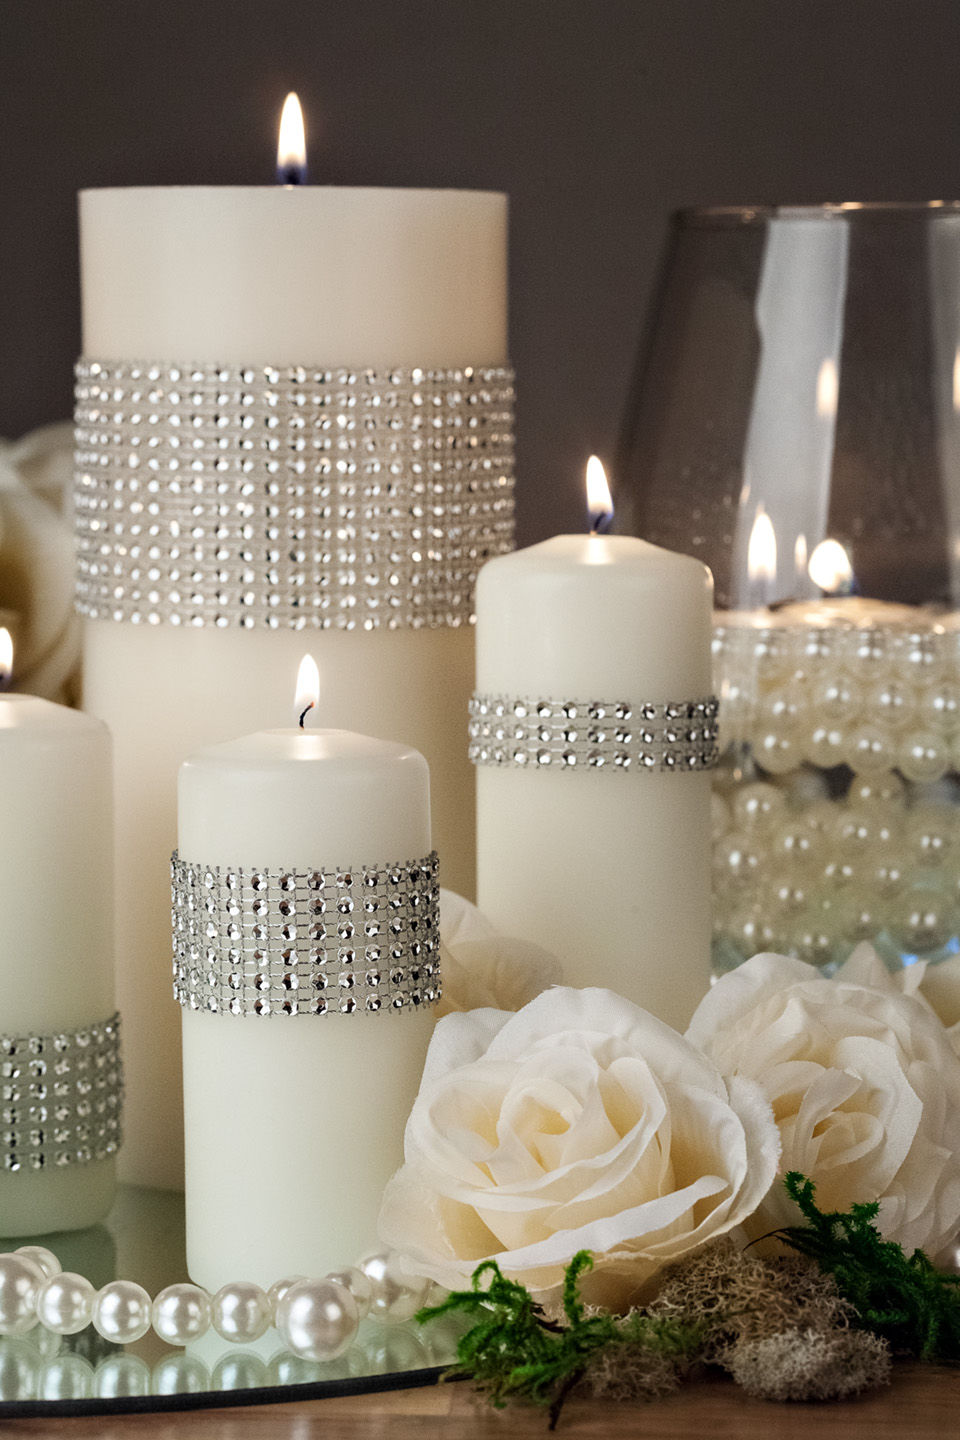 1920s Theme Centerpiece Decor Ideas